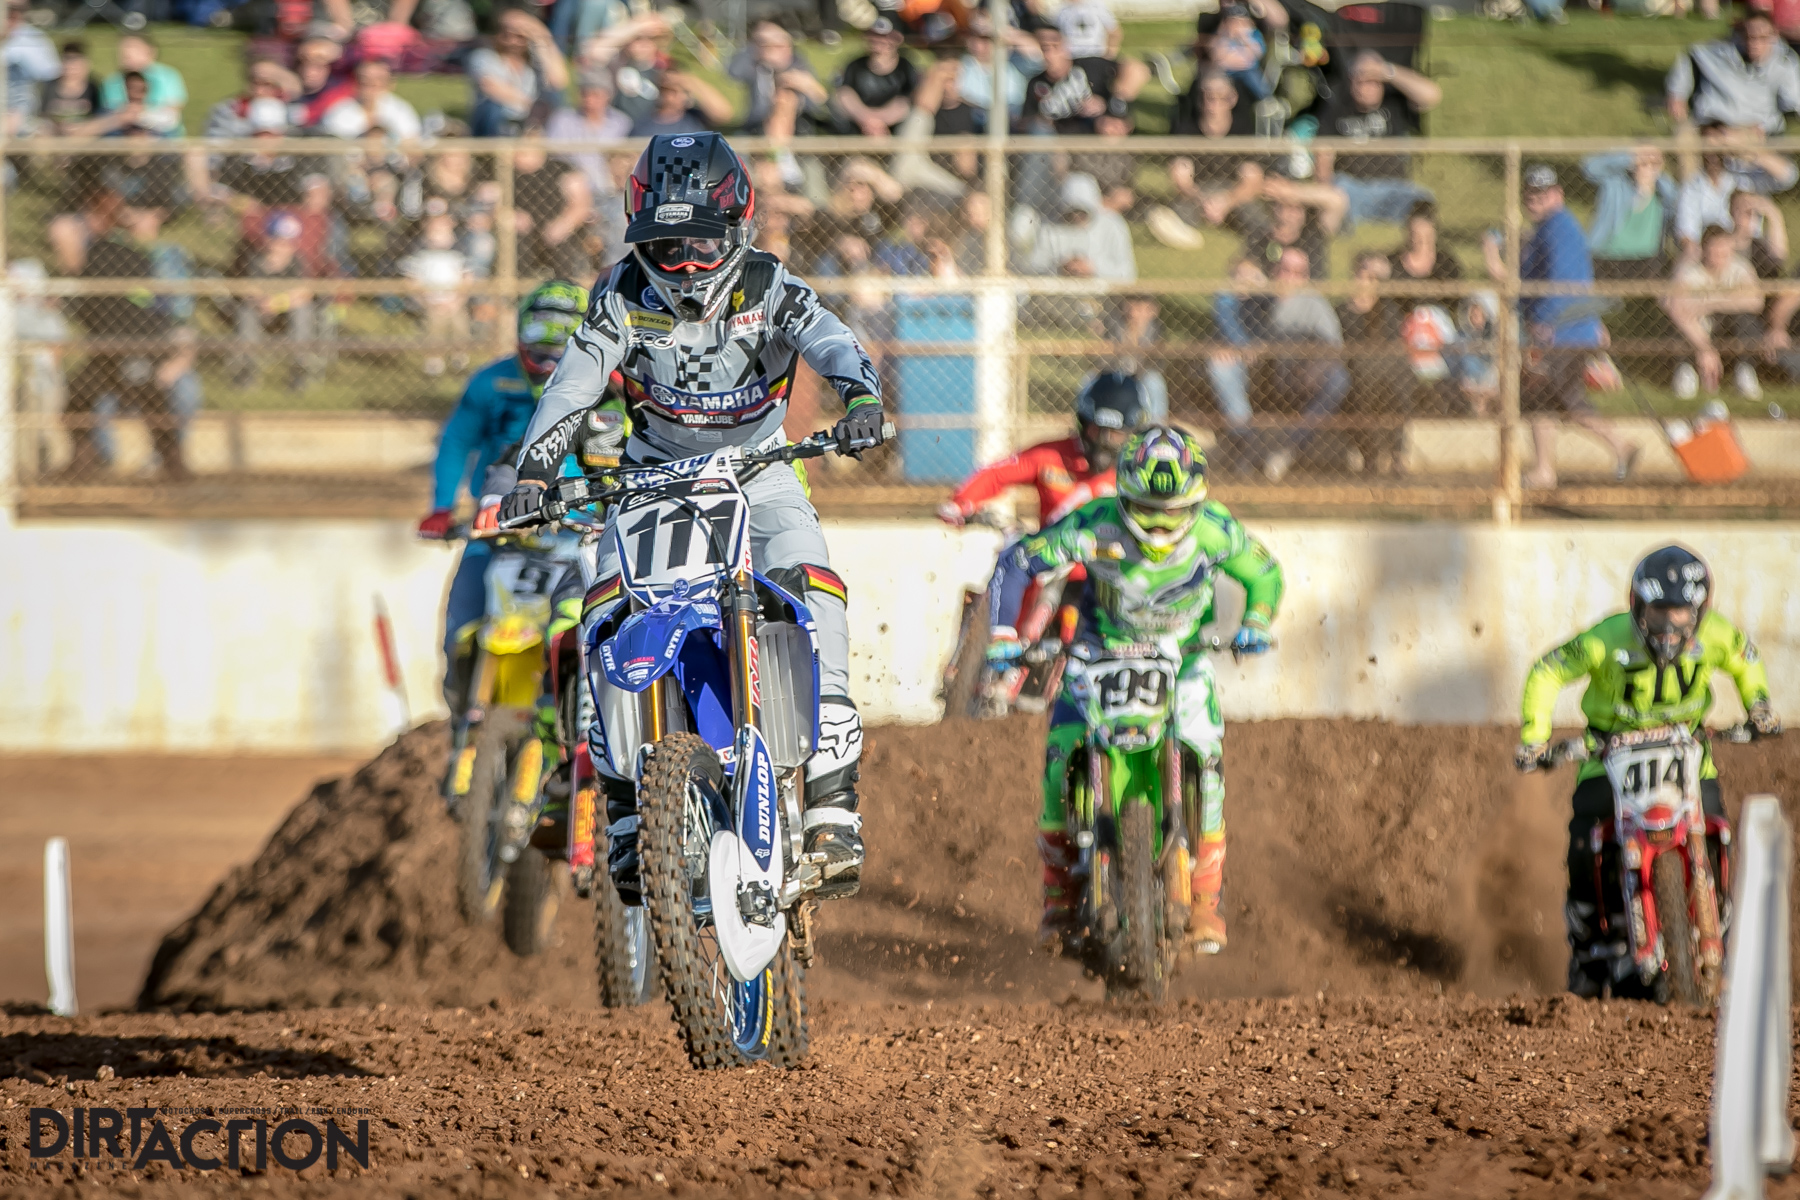 2017SXRD3DIRTACTION-84